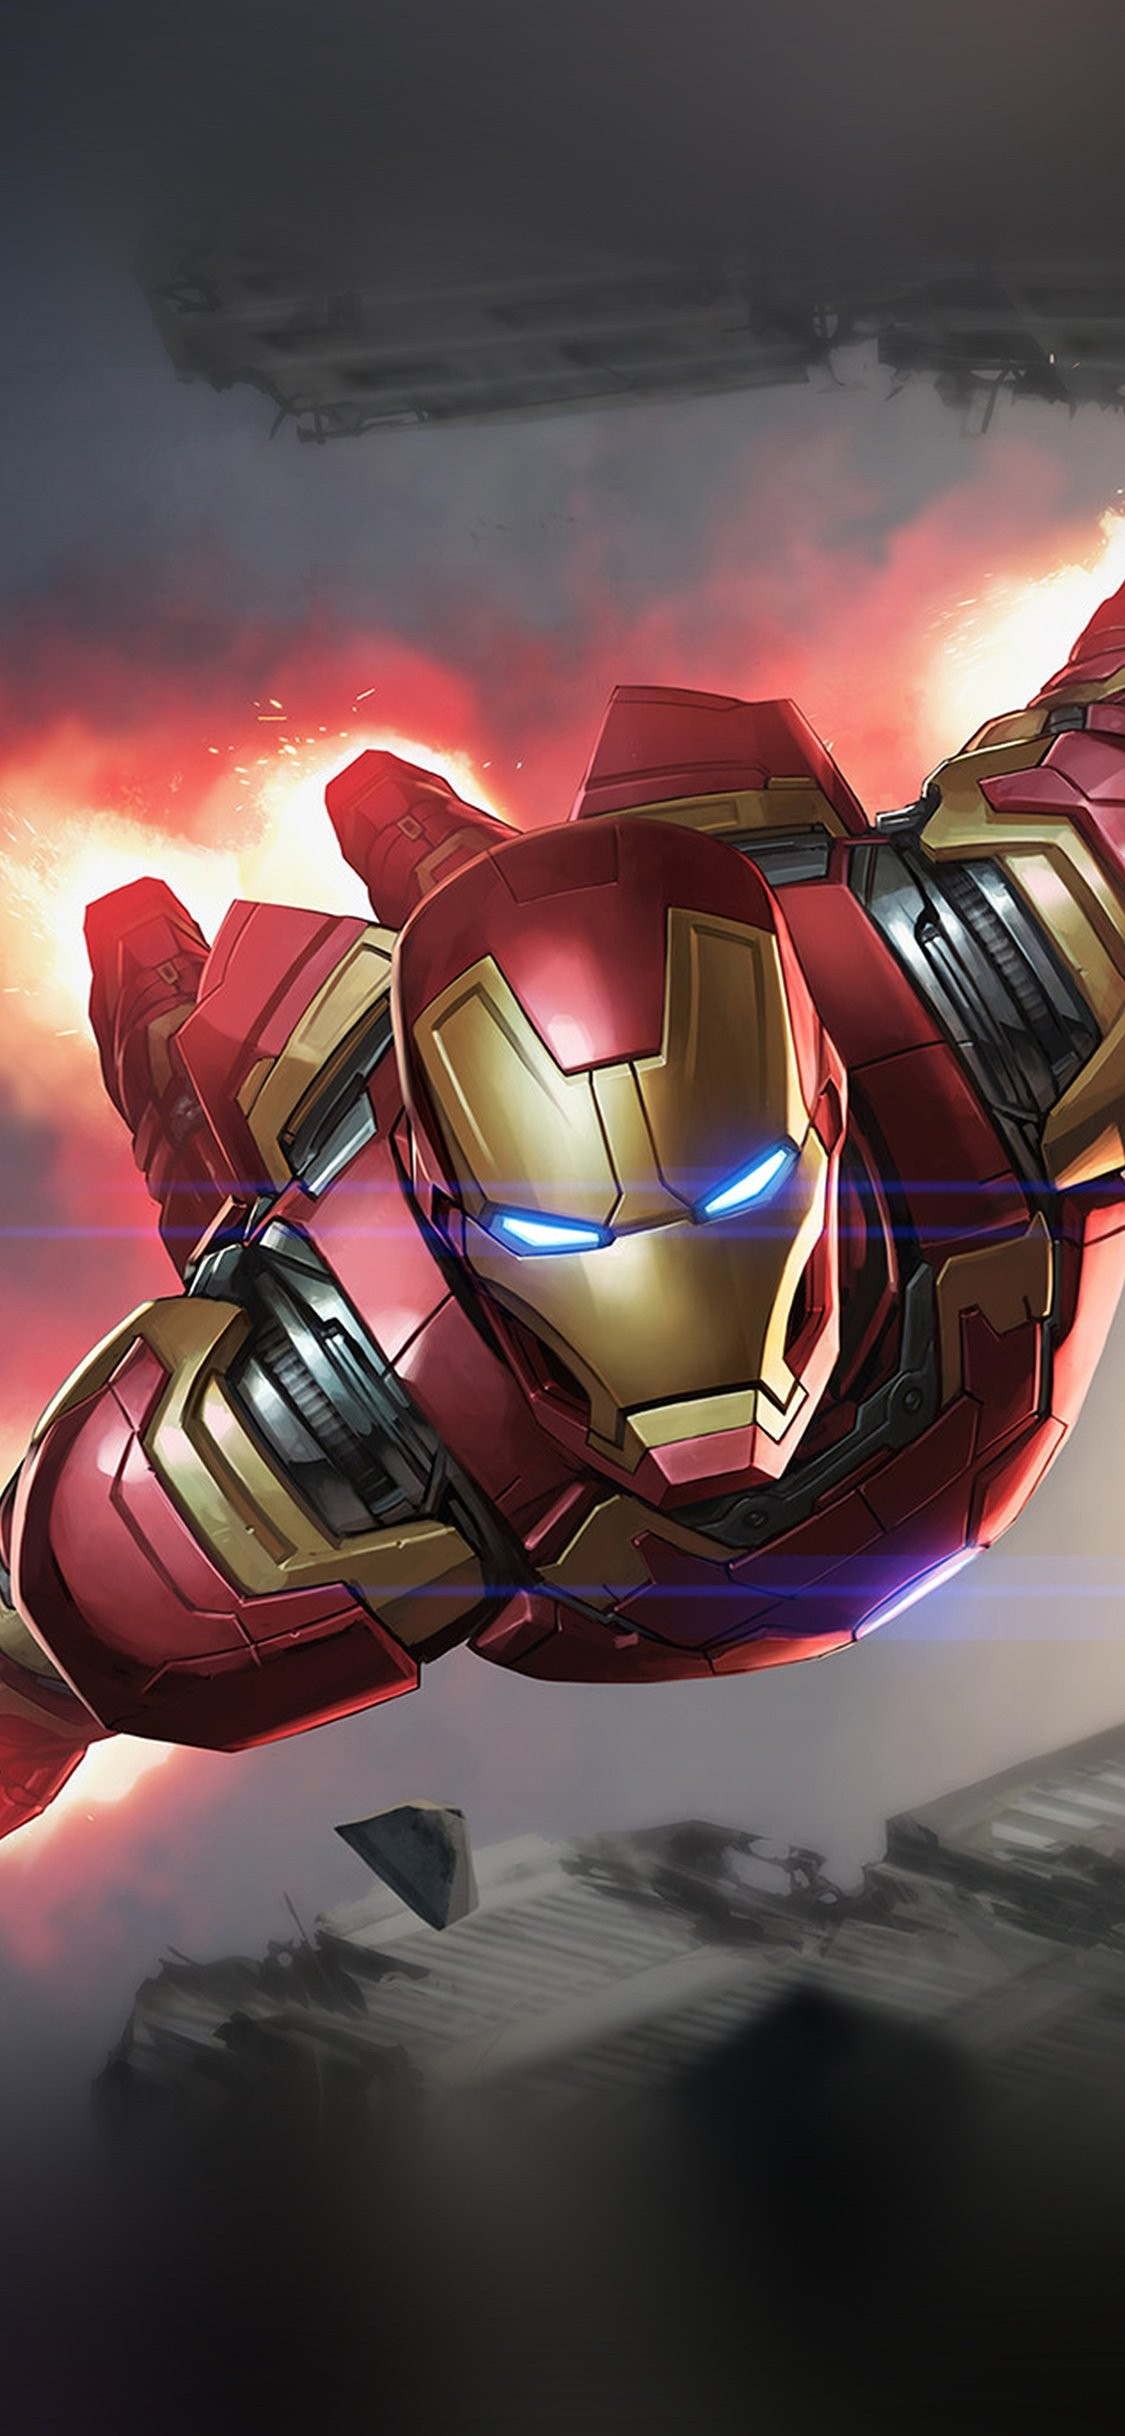 Marvel Iphone Xs Max 580757 Hd Wallpaper Backgrounds